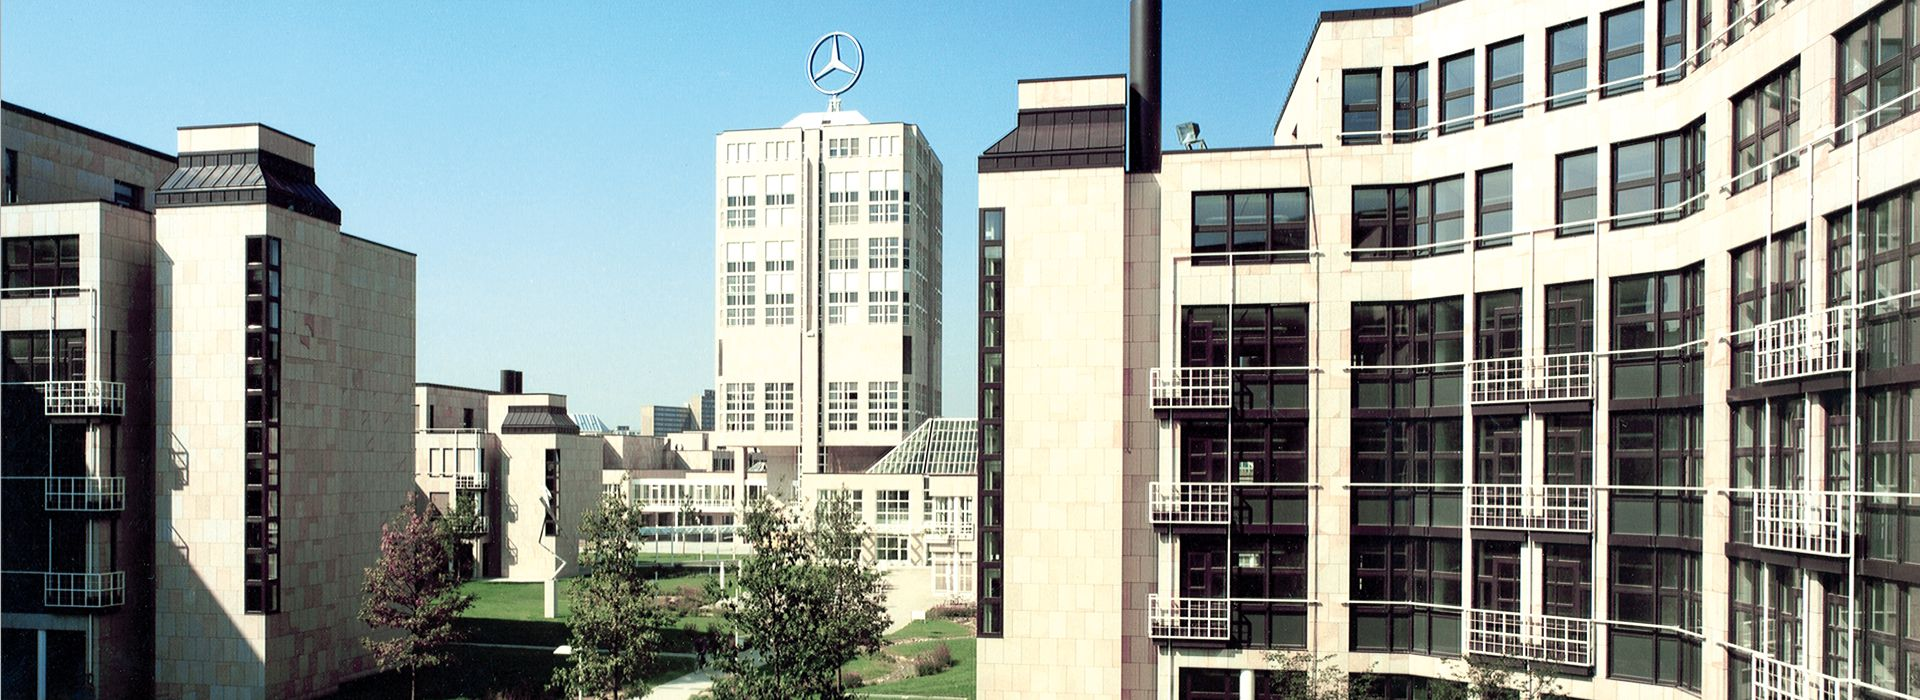 Project: Headquarters Daimler-Benz in Stuttgart - Möhringen, Germany